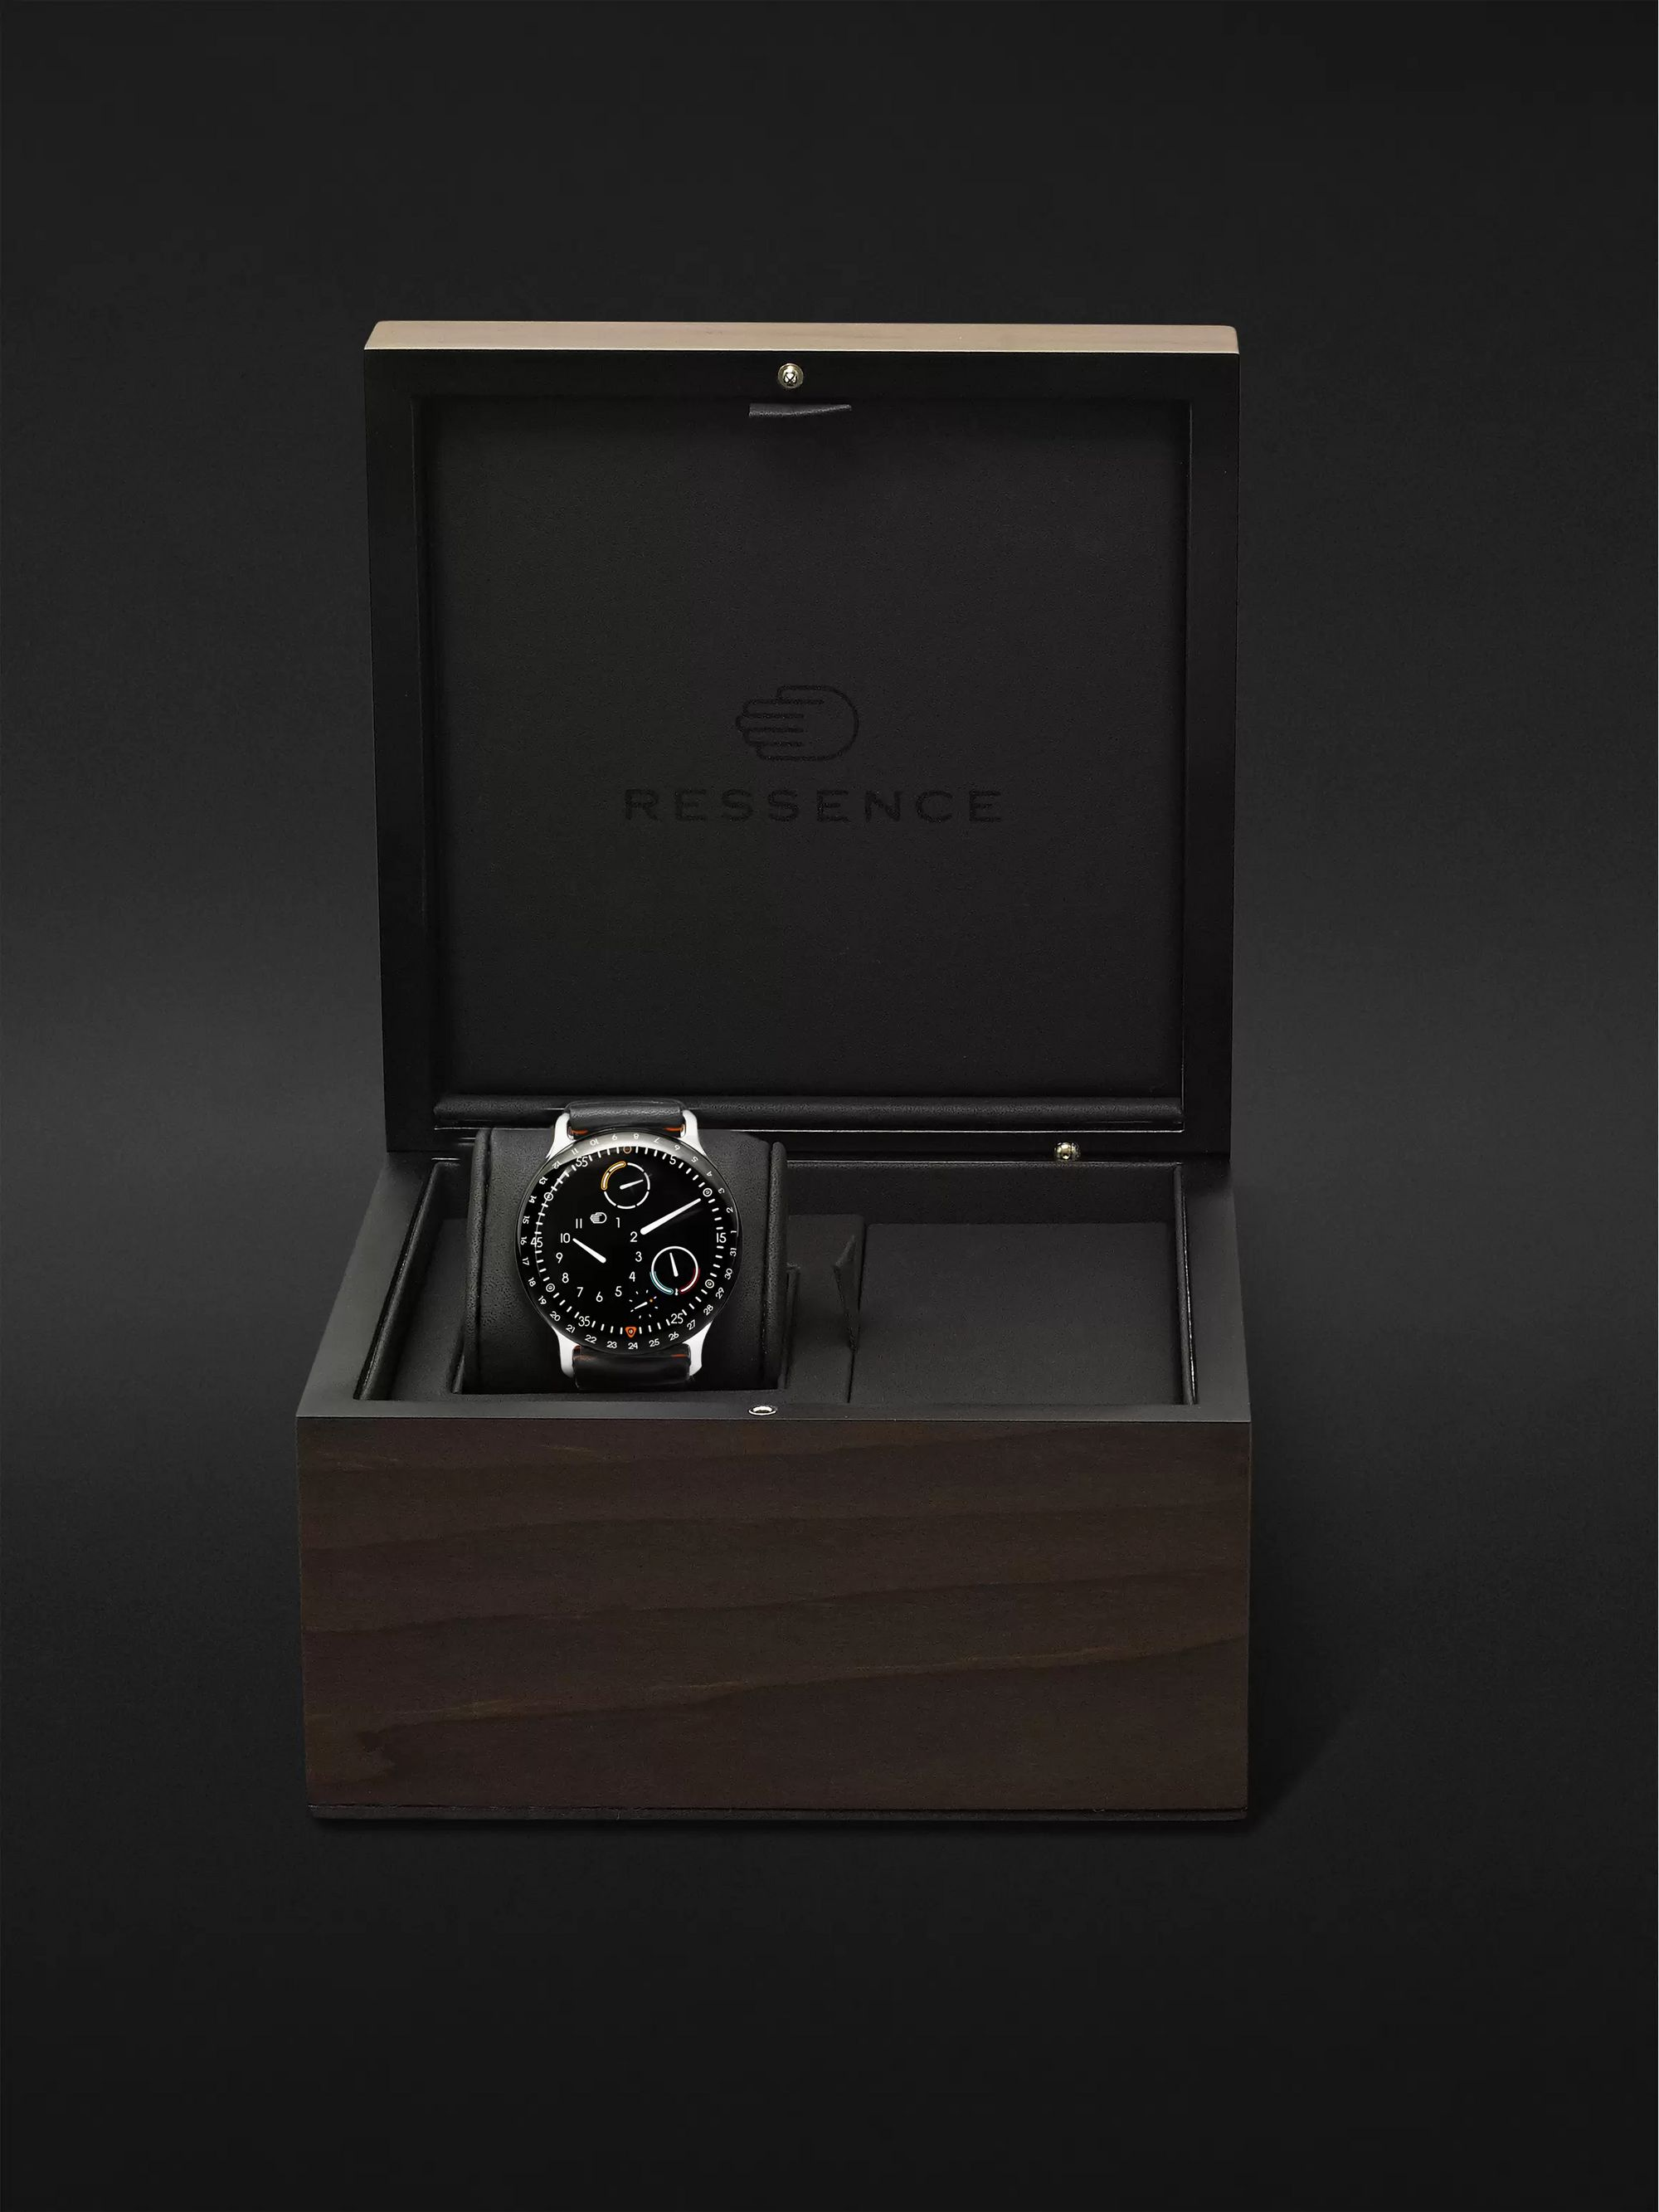 RESSENCE Type 3 Automatic 44mm Titanium and Leather Watch, Ref. No. TYPE 3